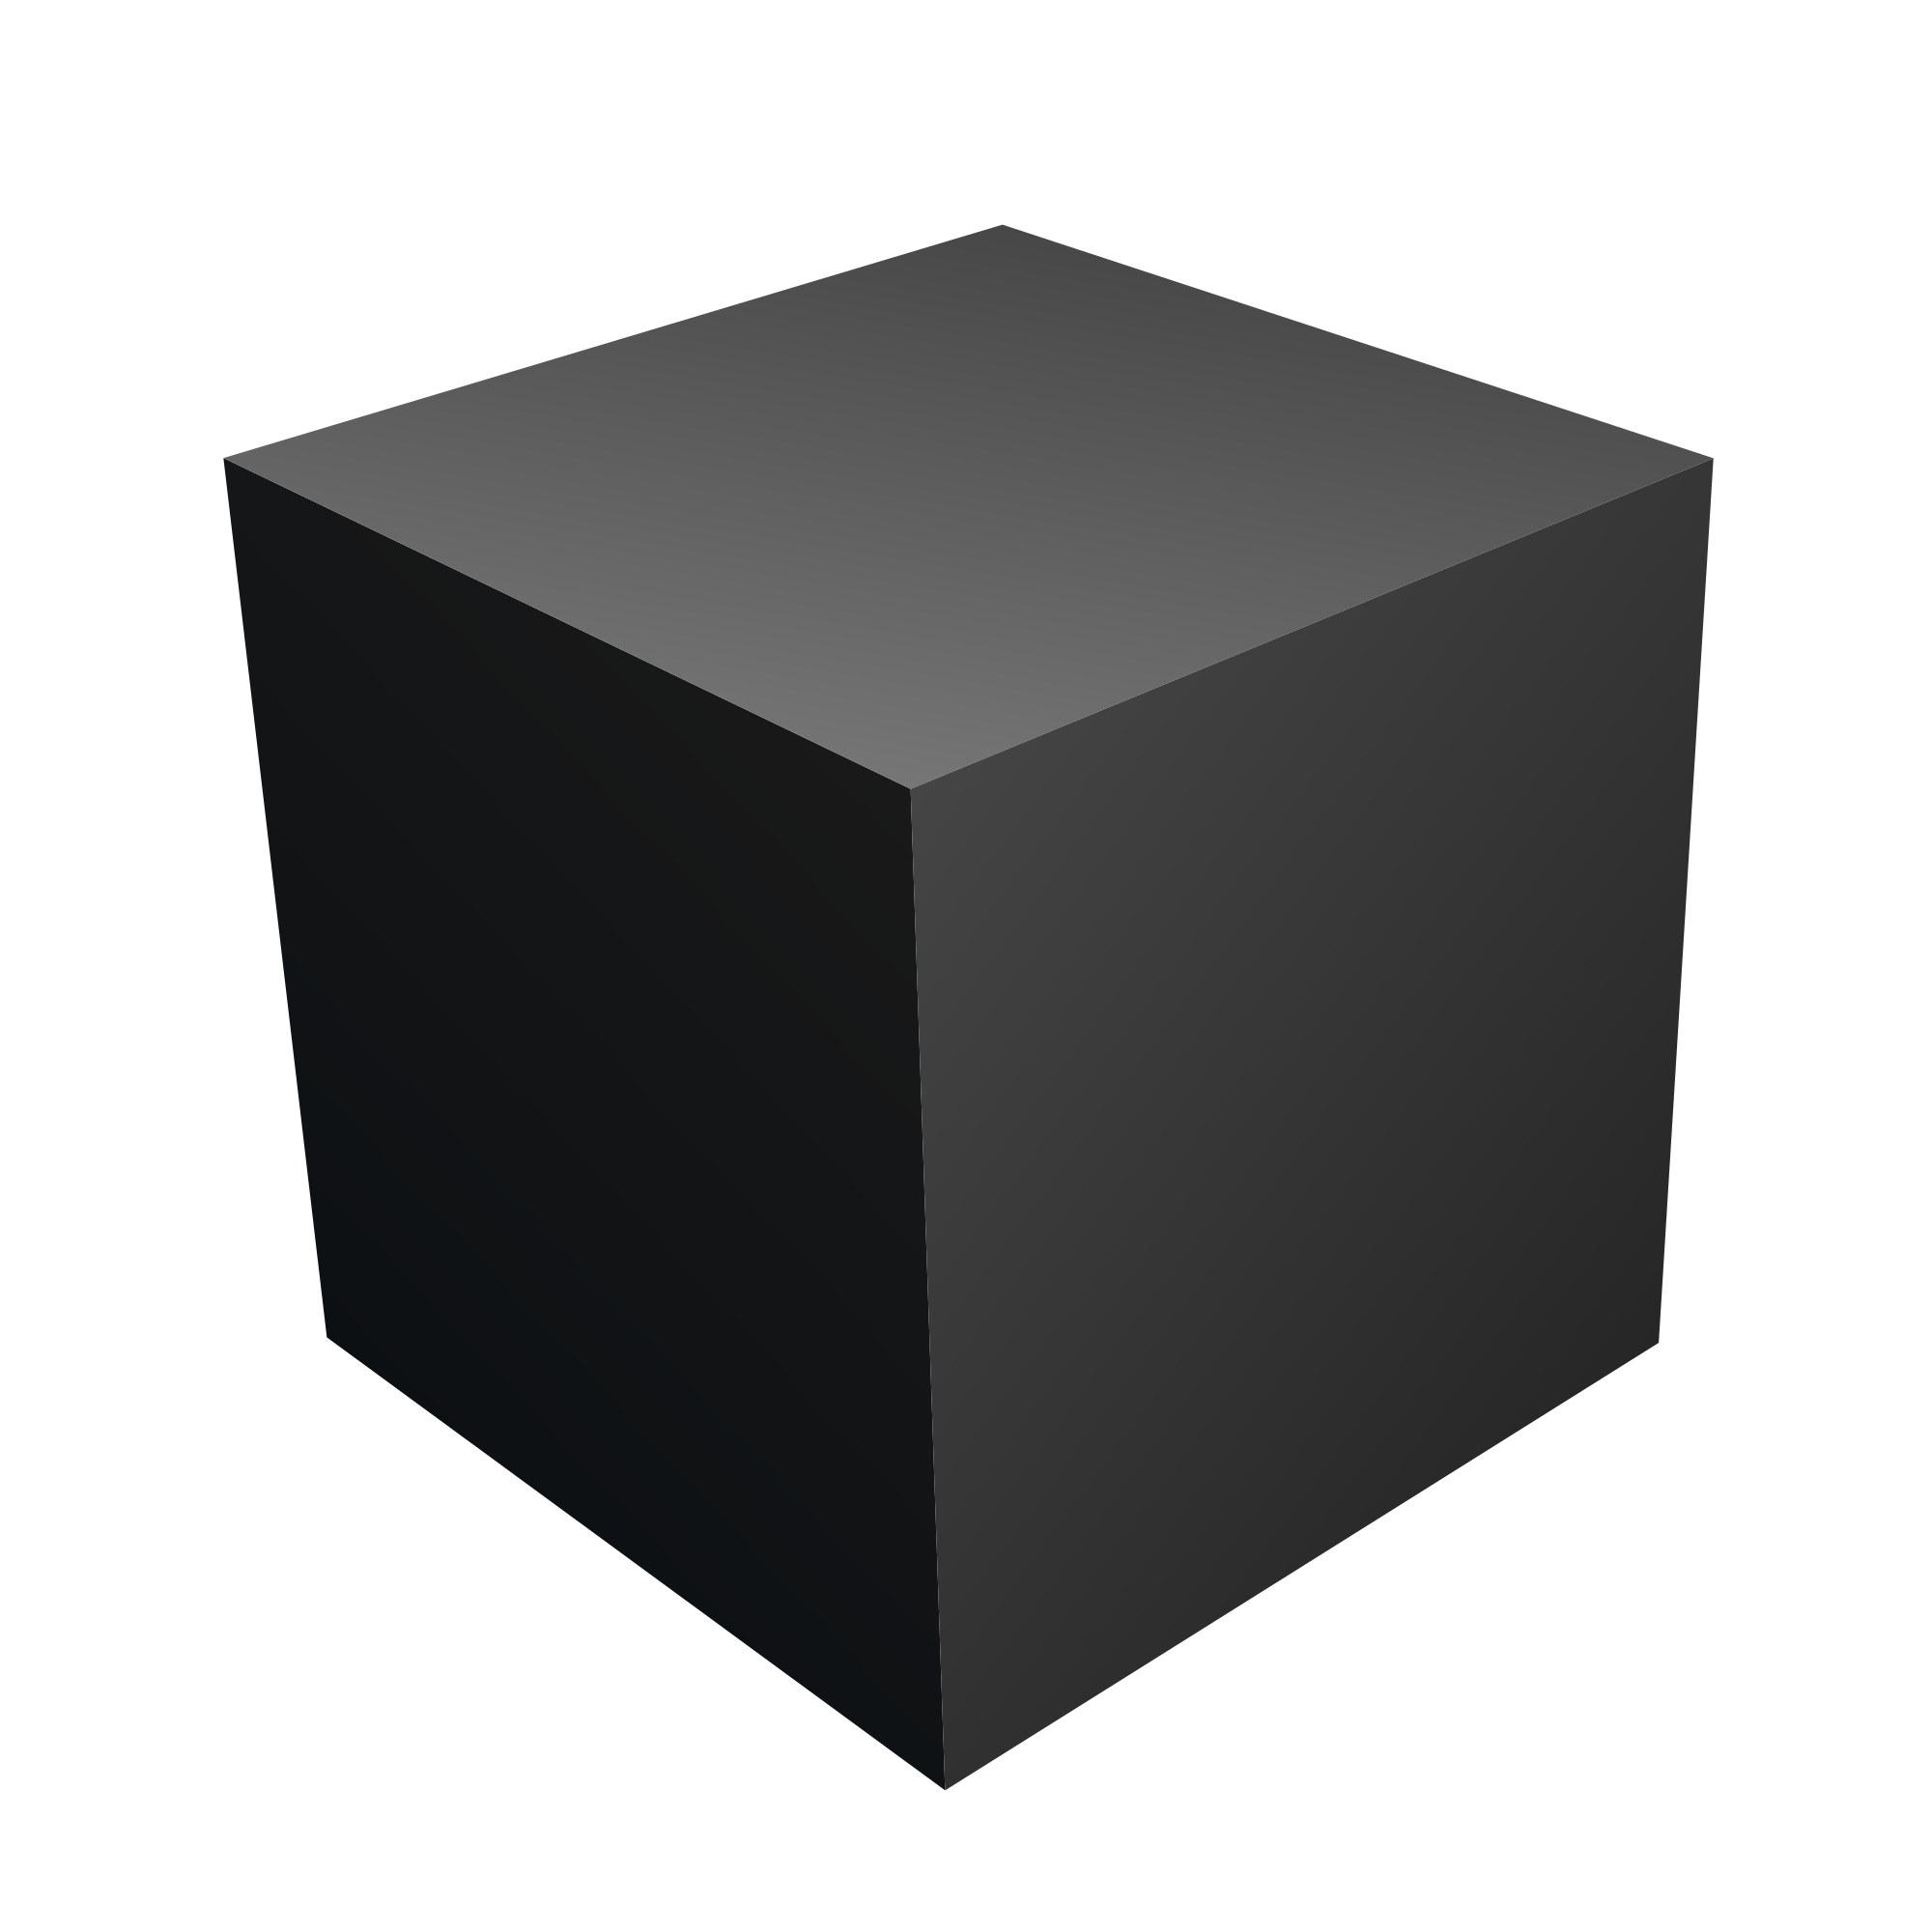 Cube Png , (+) Pictures.